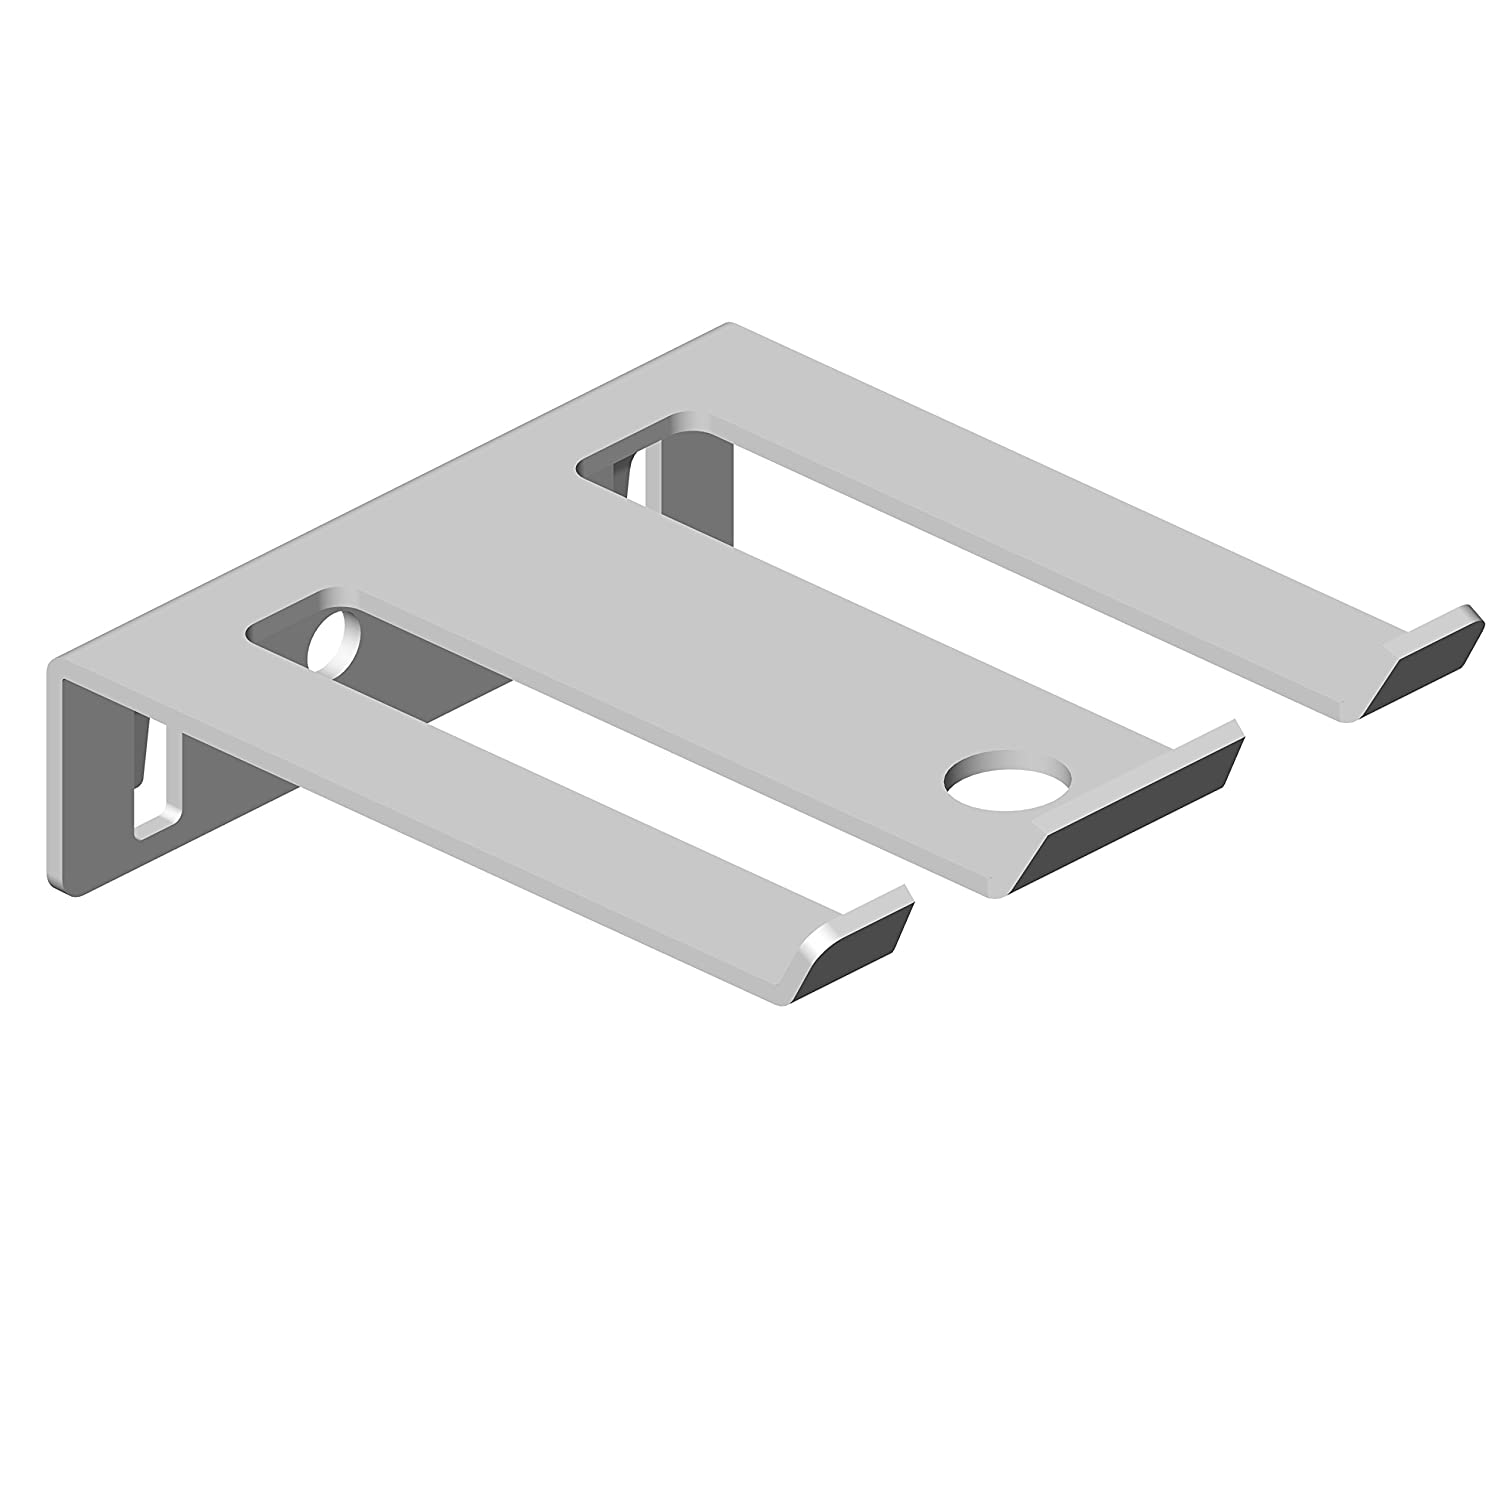 Element System 11405-00002 Porte-outil double 6 outils 63 x 75 mm Blanc